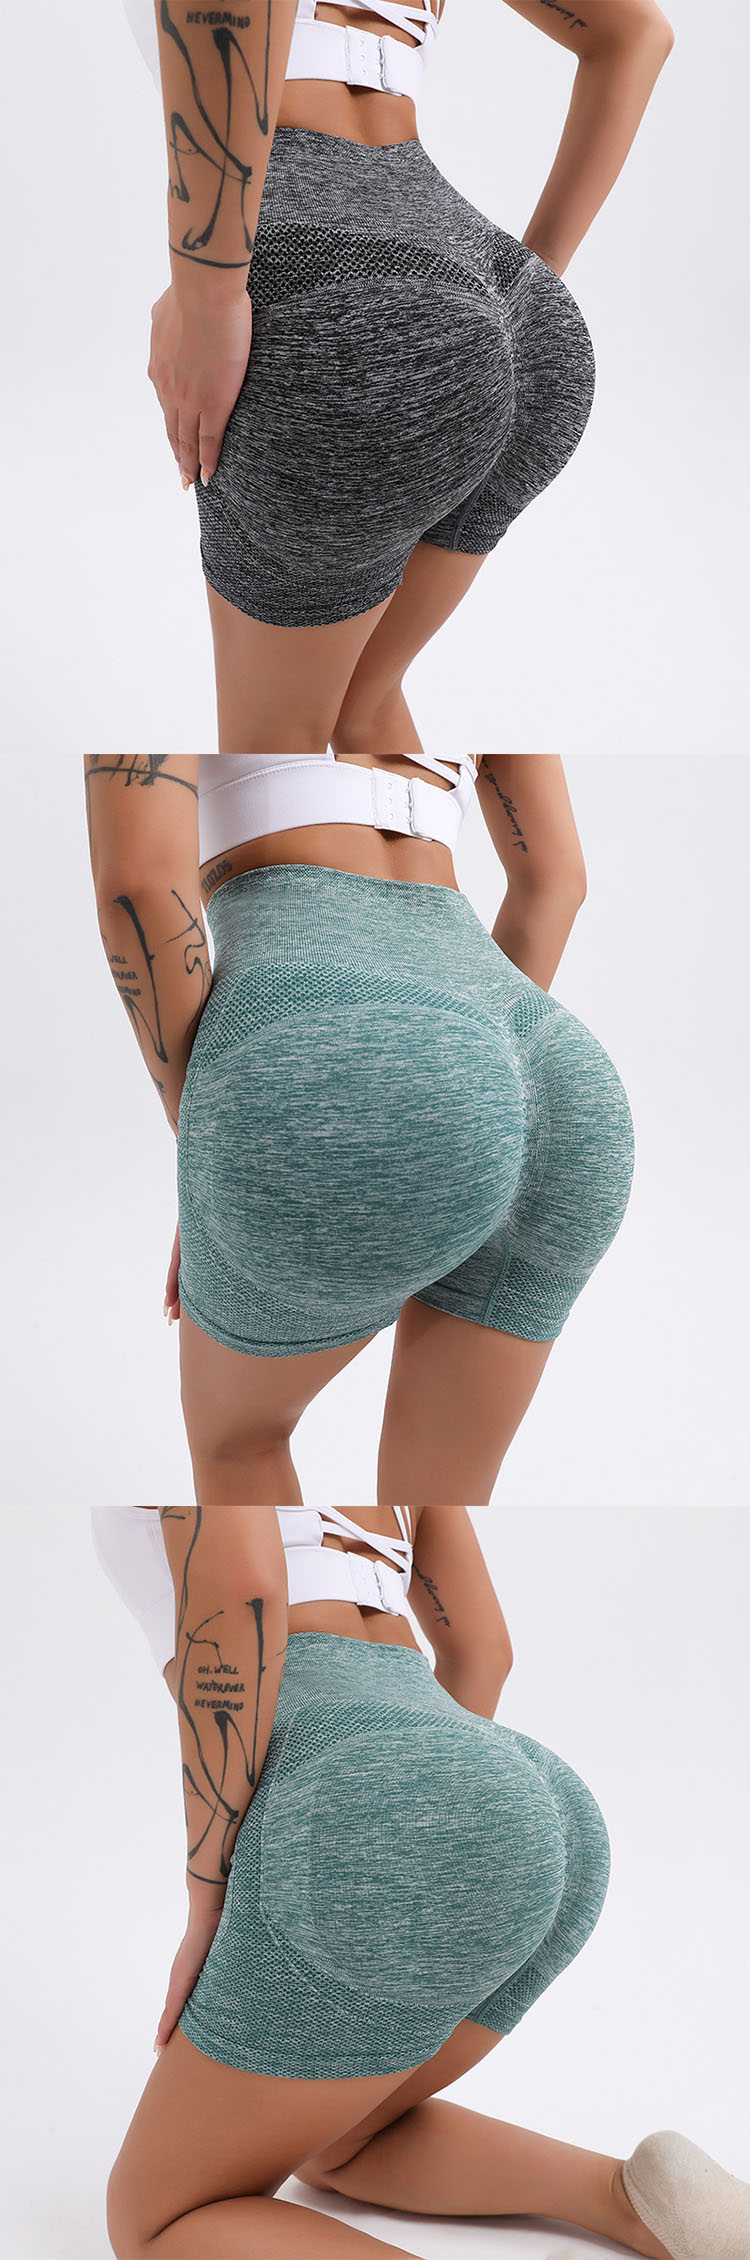 High-elastic fabric, comfortable and not tight at the waist.